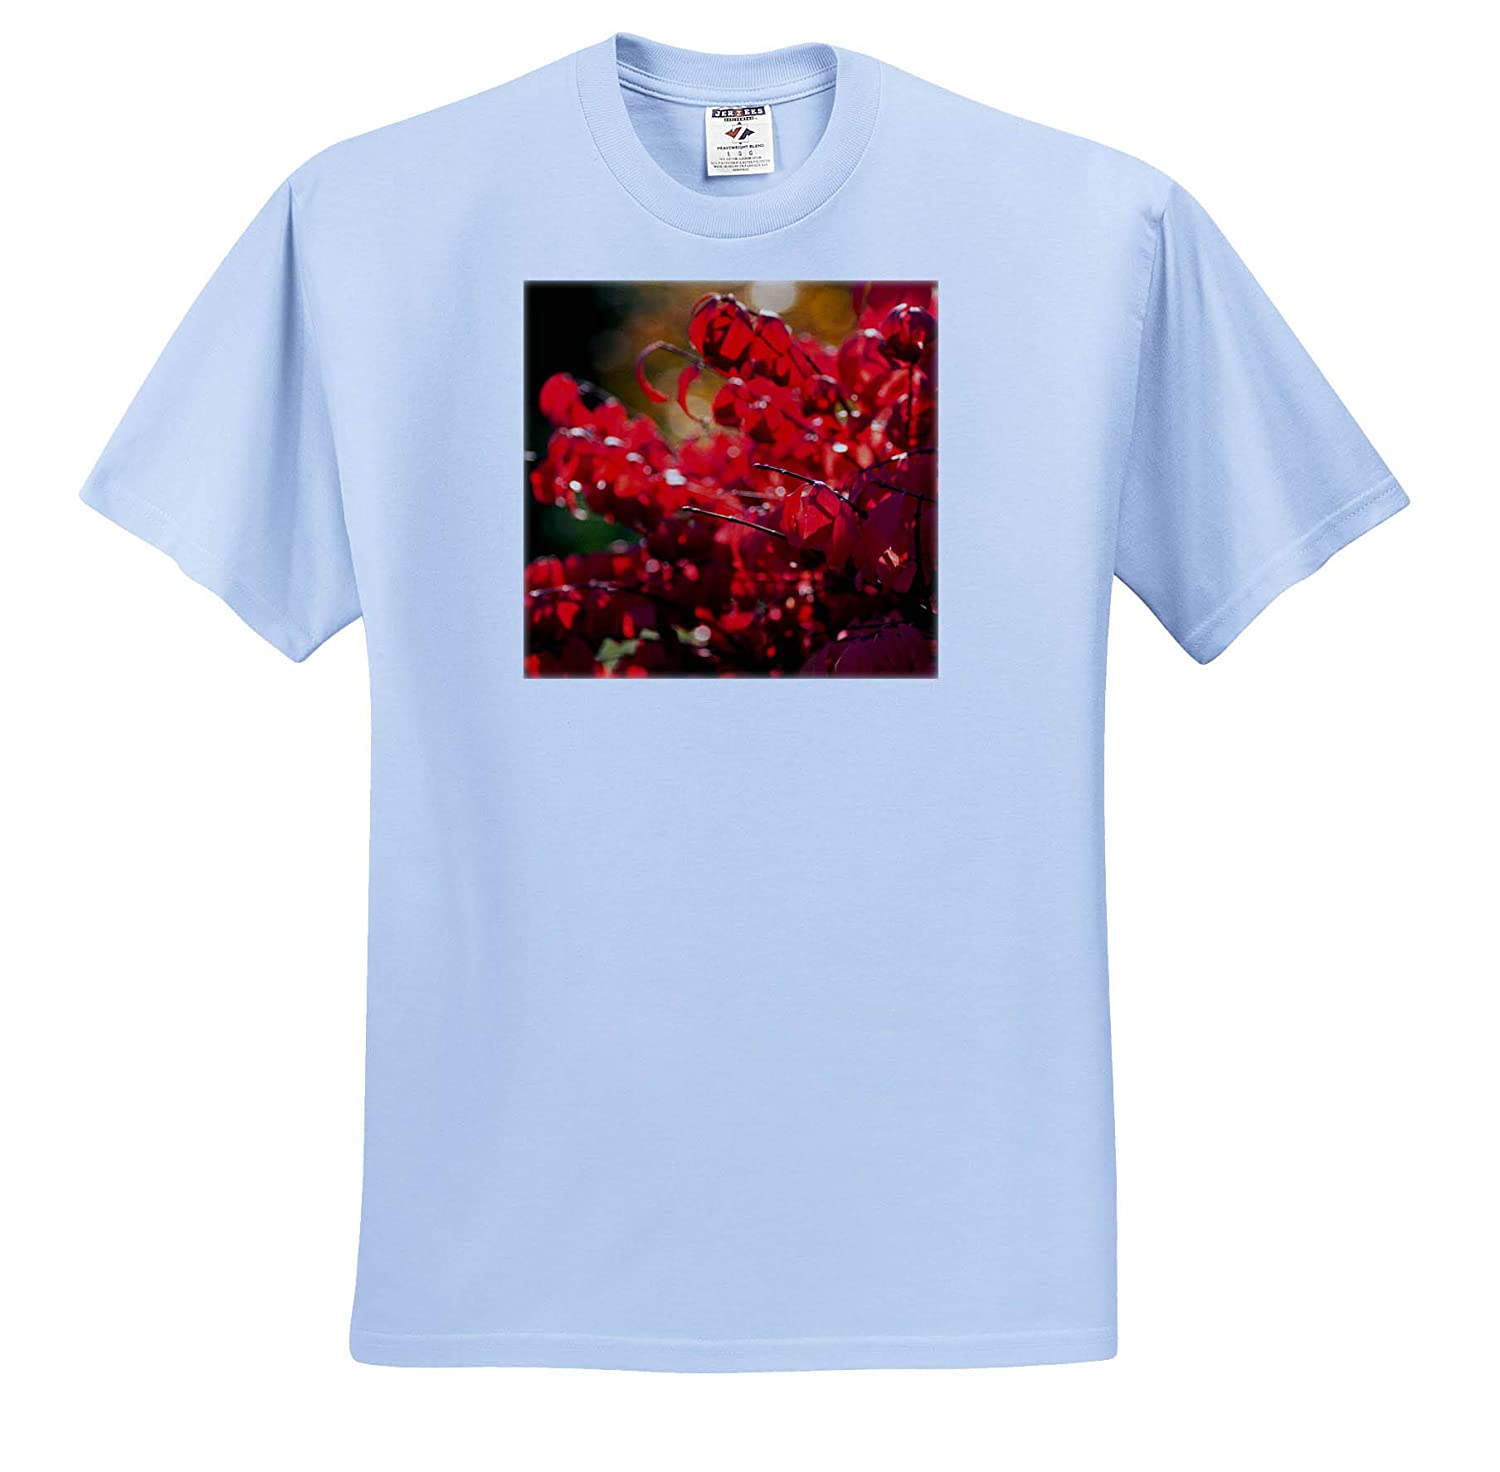 Autumn in The Garden 3dRose Alexis Photography Sunlit red Leaves of a Decorative Shrub T-Shirts Seasons Autumn Leaves